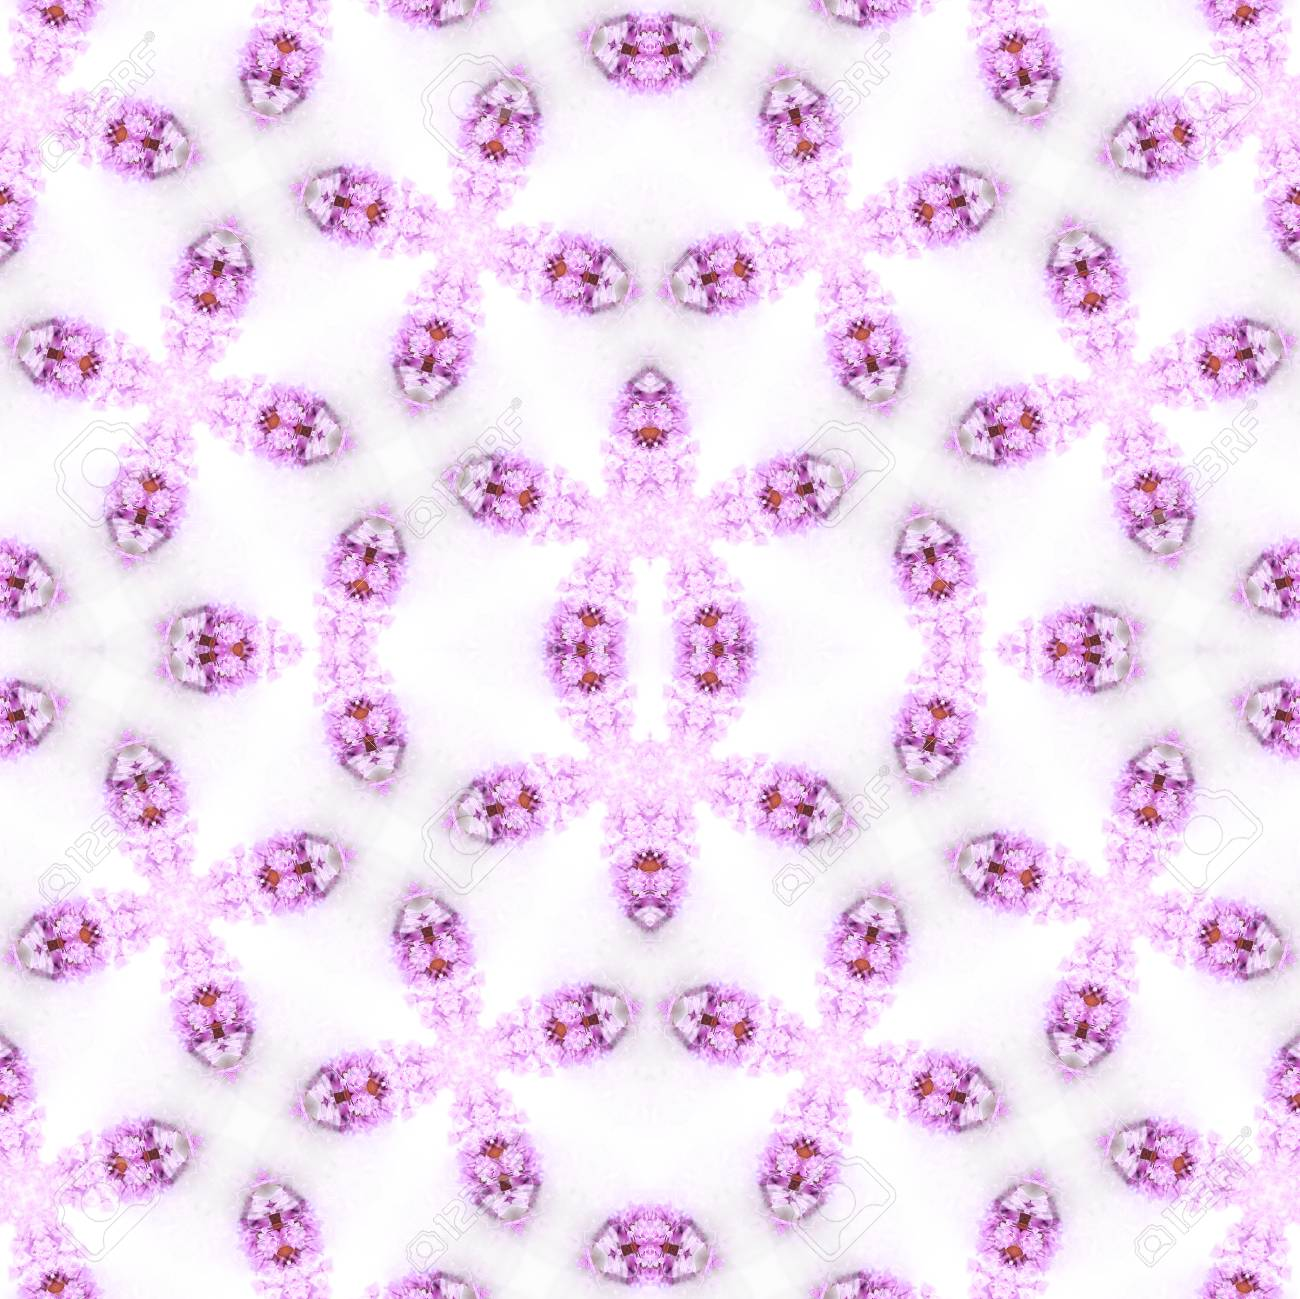 Abstract flowers seamless pattern background. Kaleidoscope from flowers. Hydraulic tile design. - 104074708